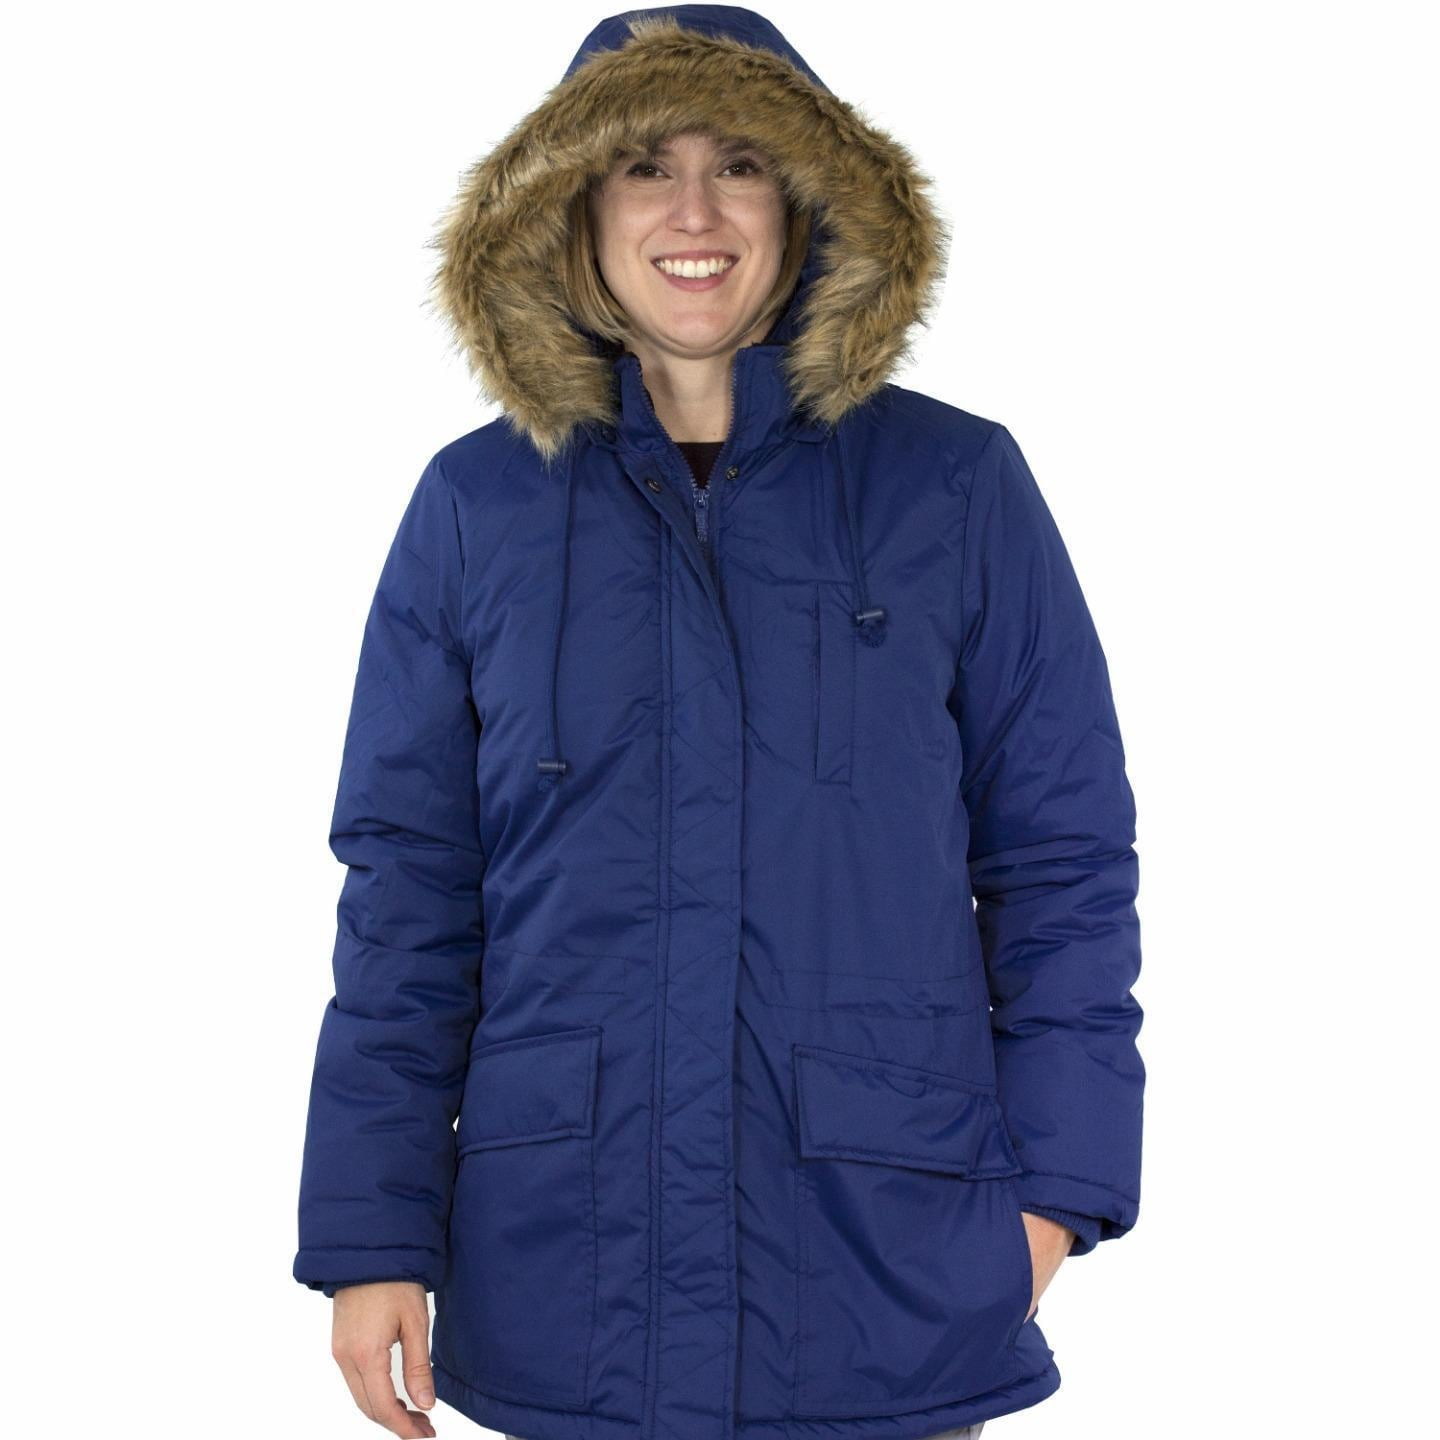 Totes Women's Anorak Parka Coat (Blue - XL) (polyester)